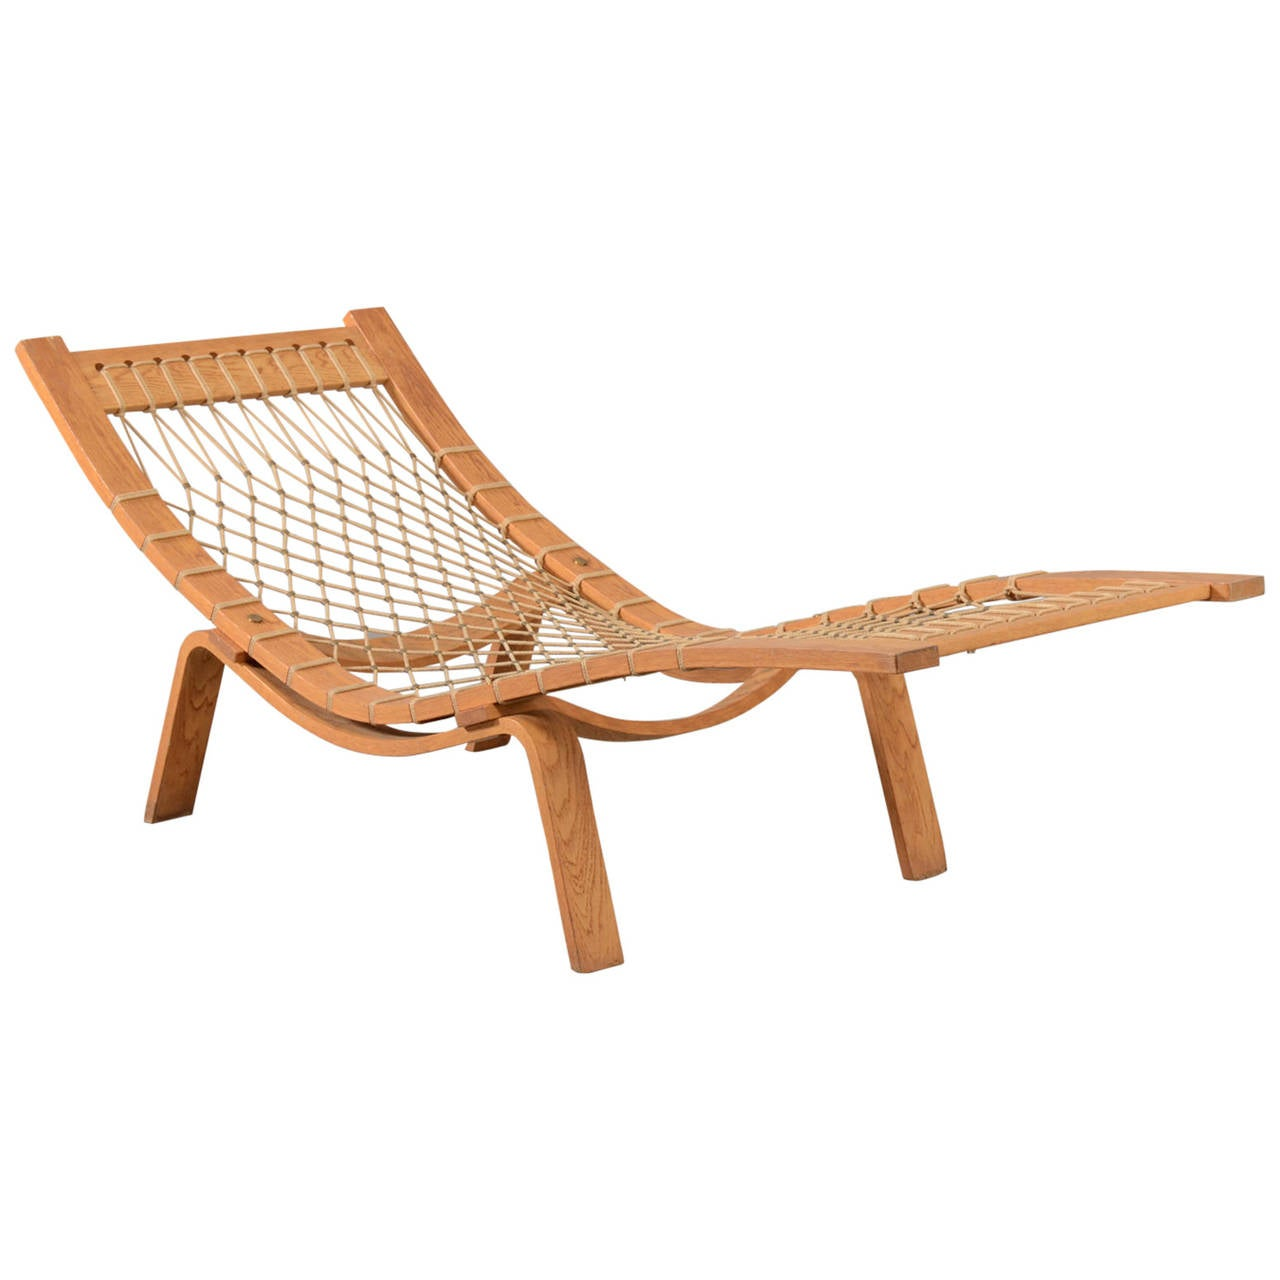 hans j wegner hammock chaise longue for getama for sale at 1stdibs. Black Bedroom Furniture Sets. Home Design Ideas